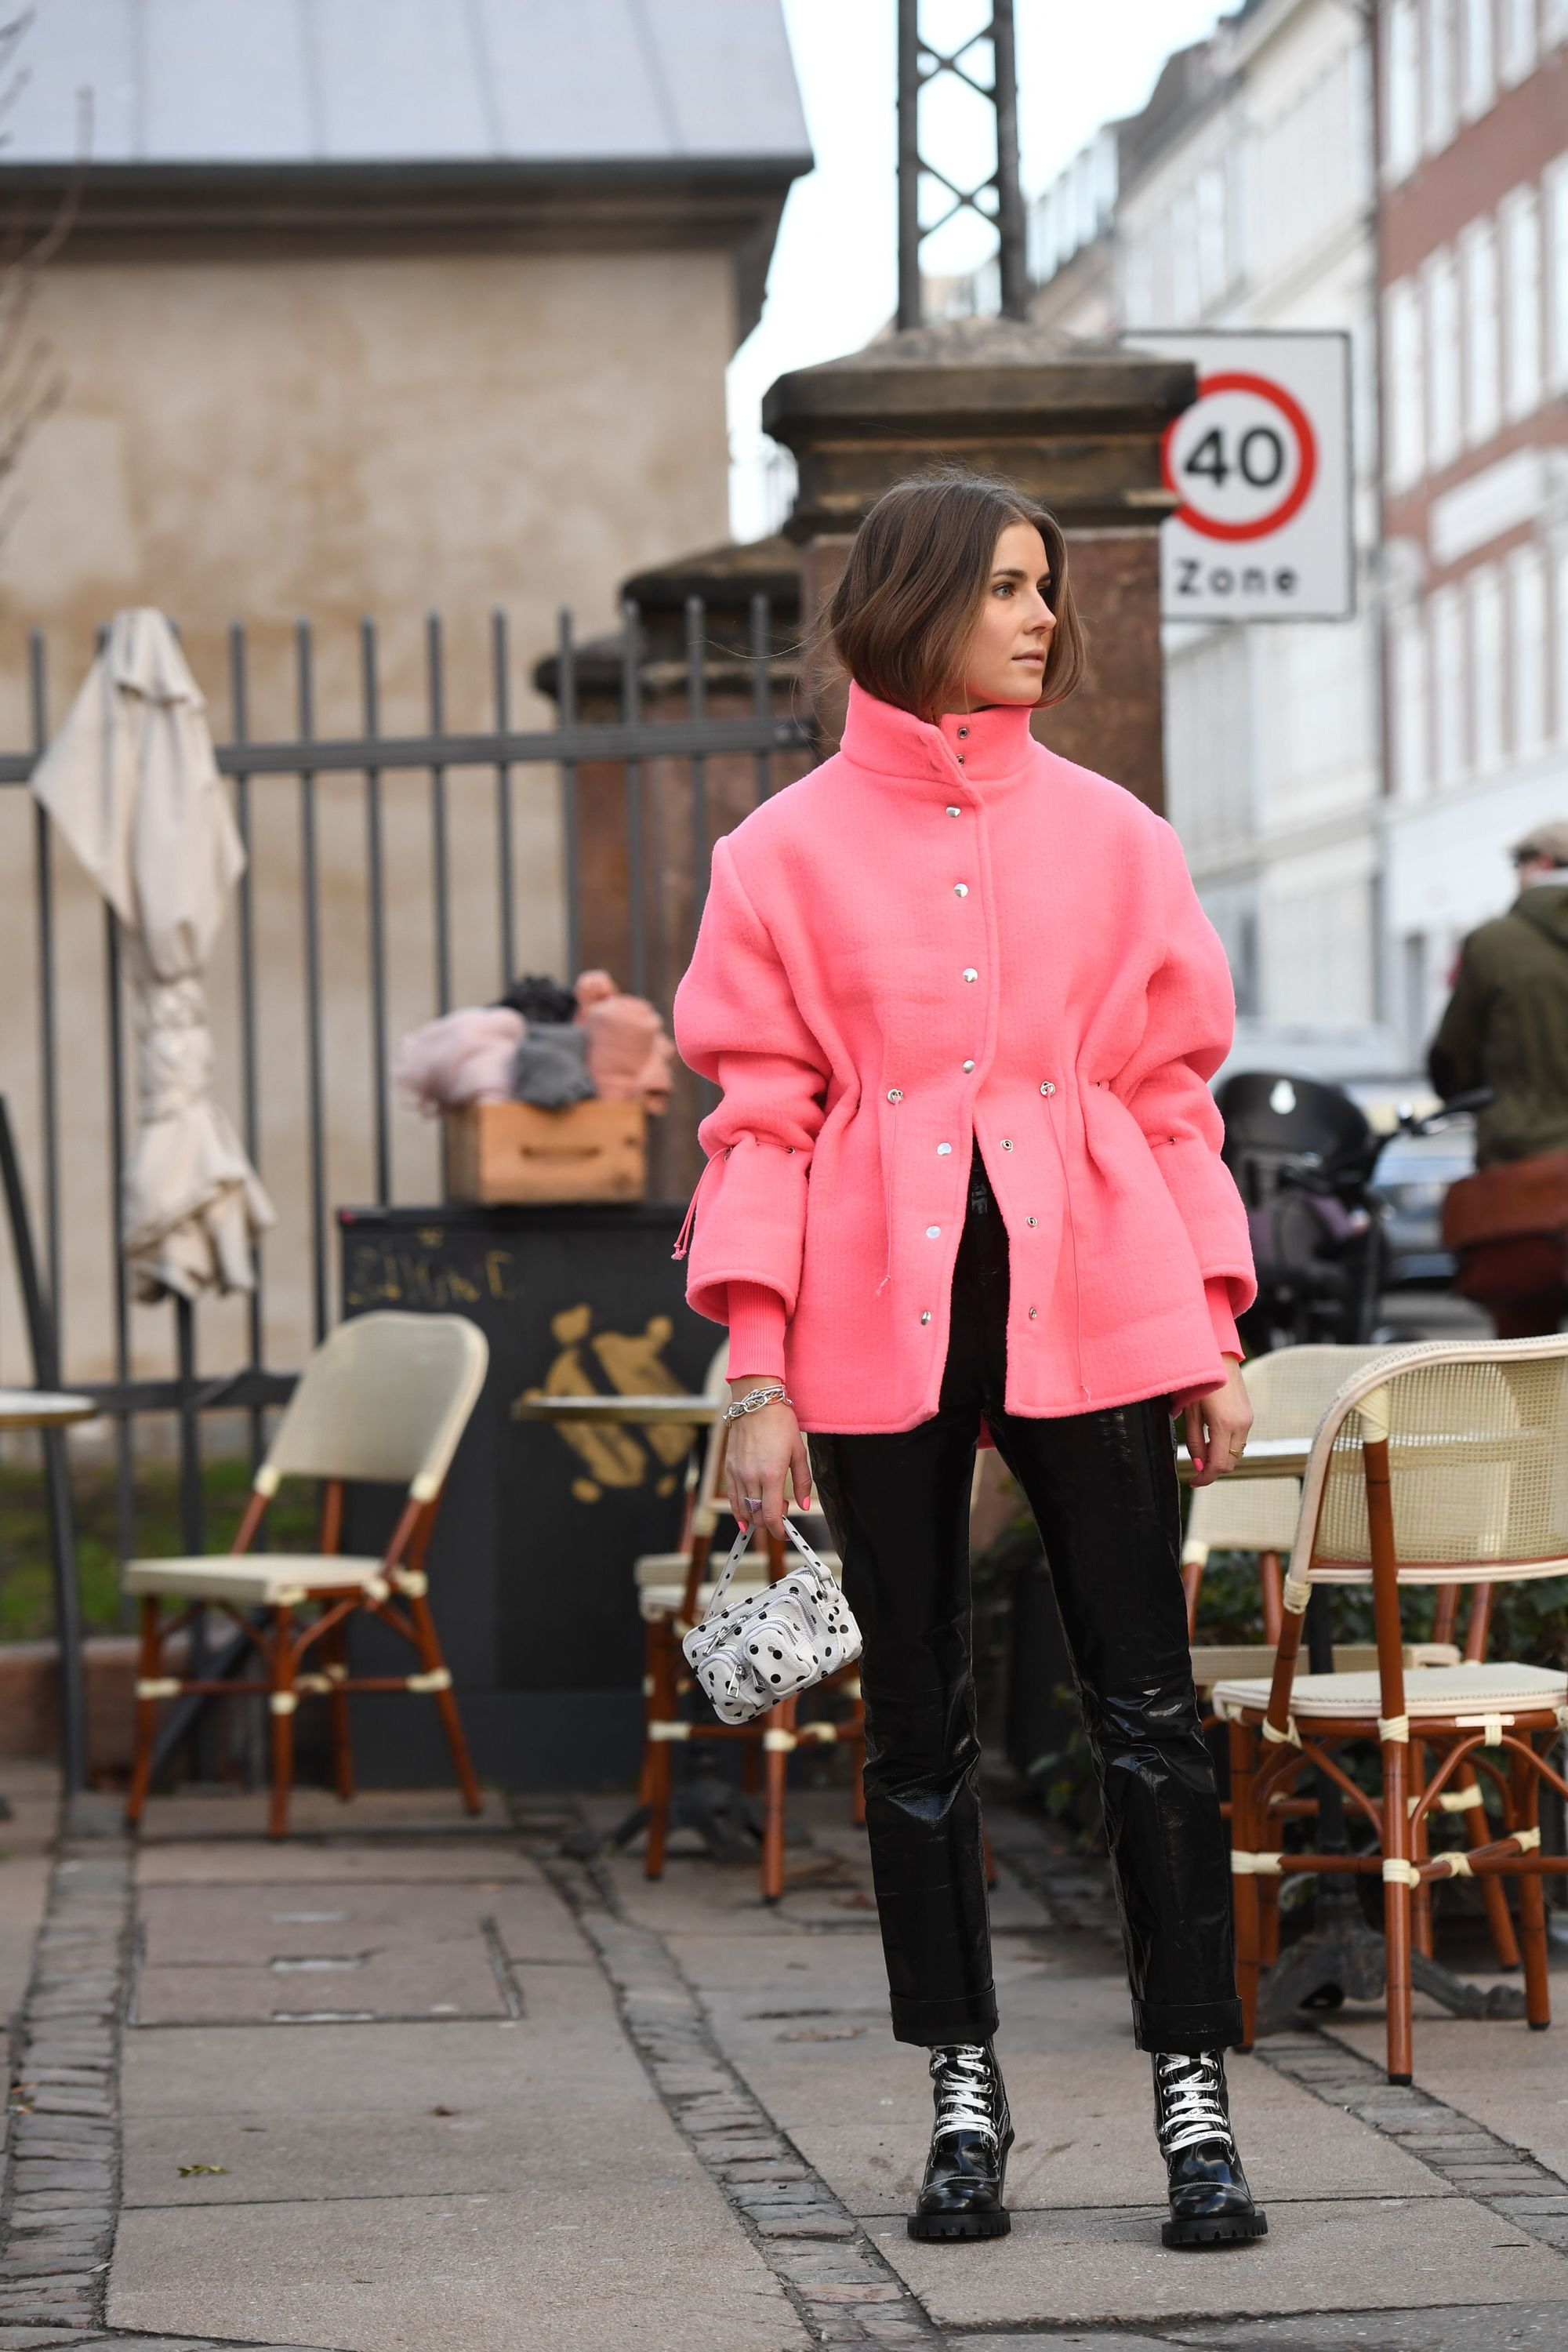 Hair trends 2019: Street style woman with brown hair tucked into her pink jacket.